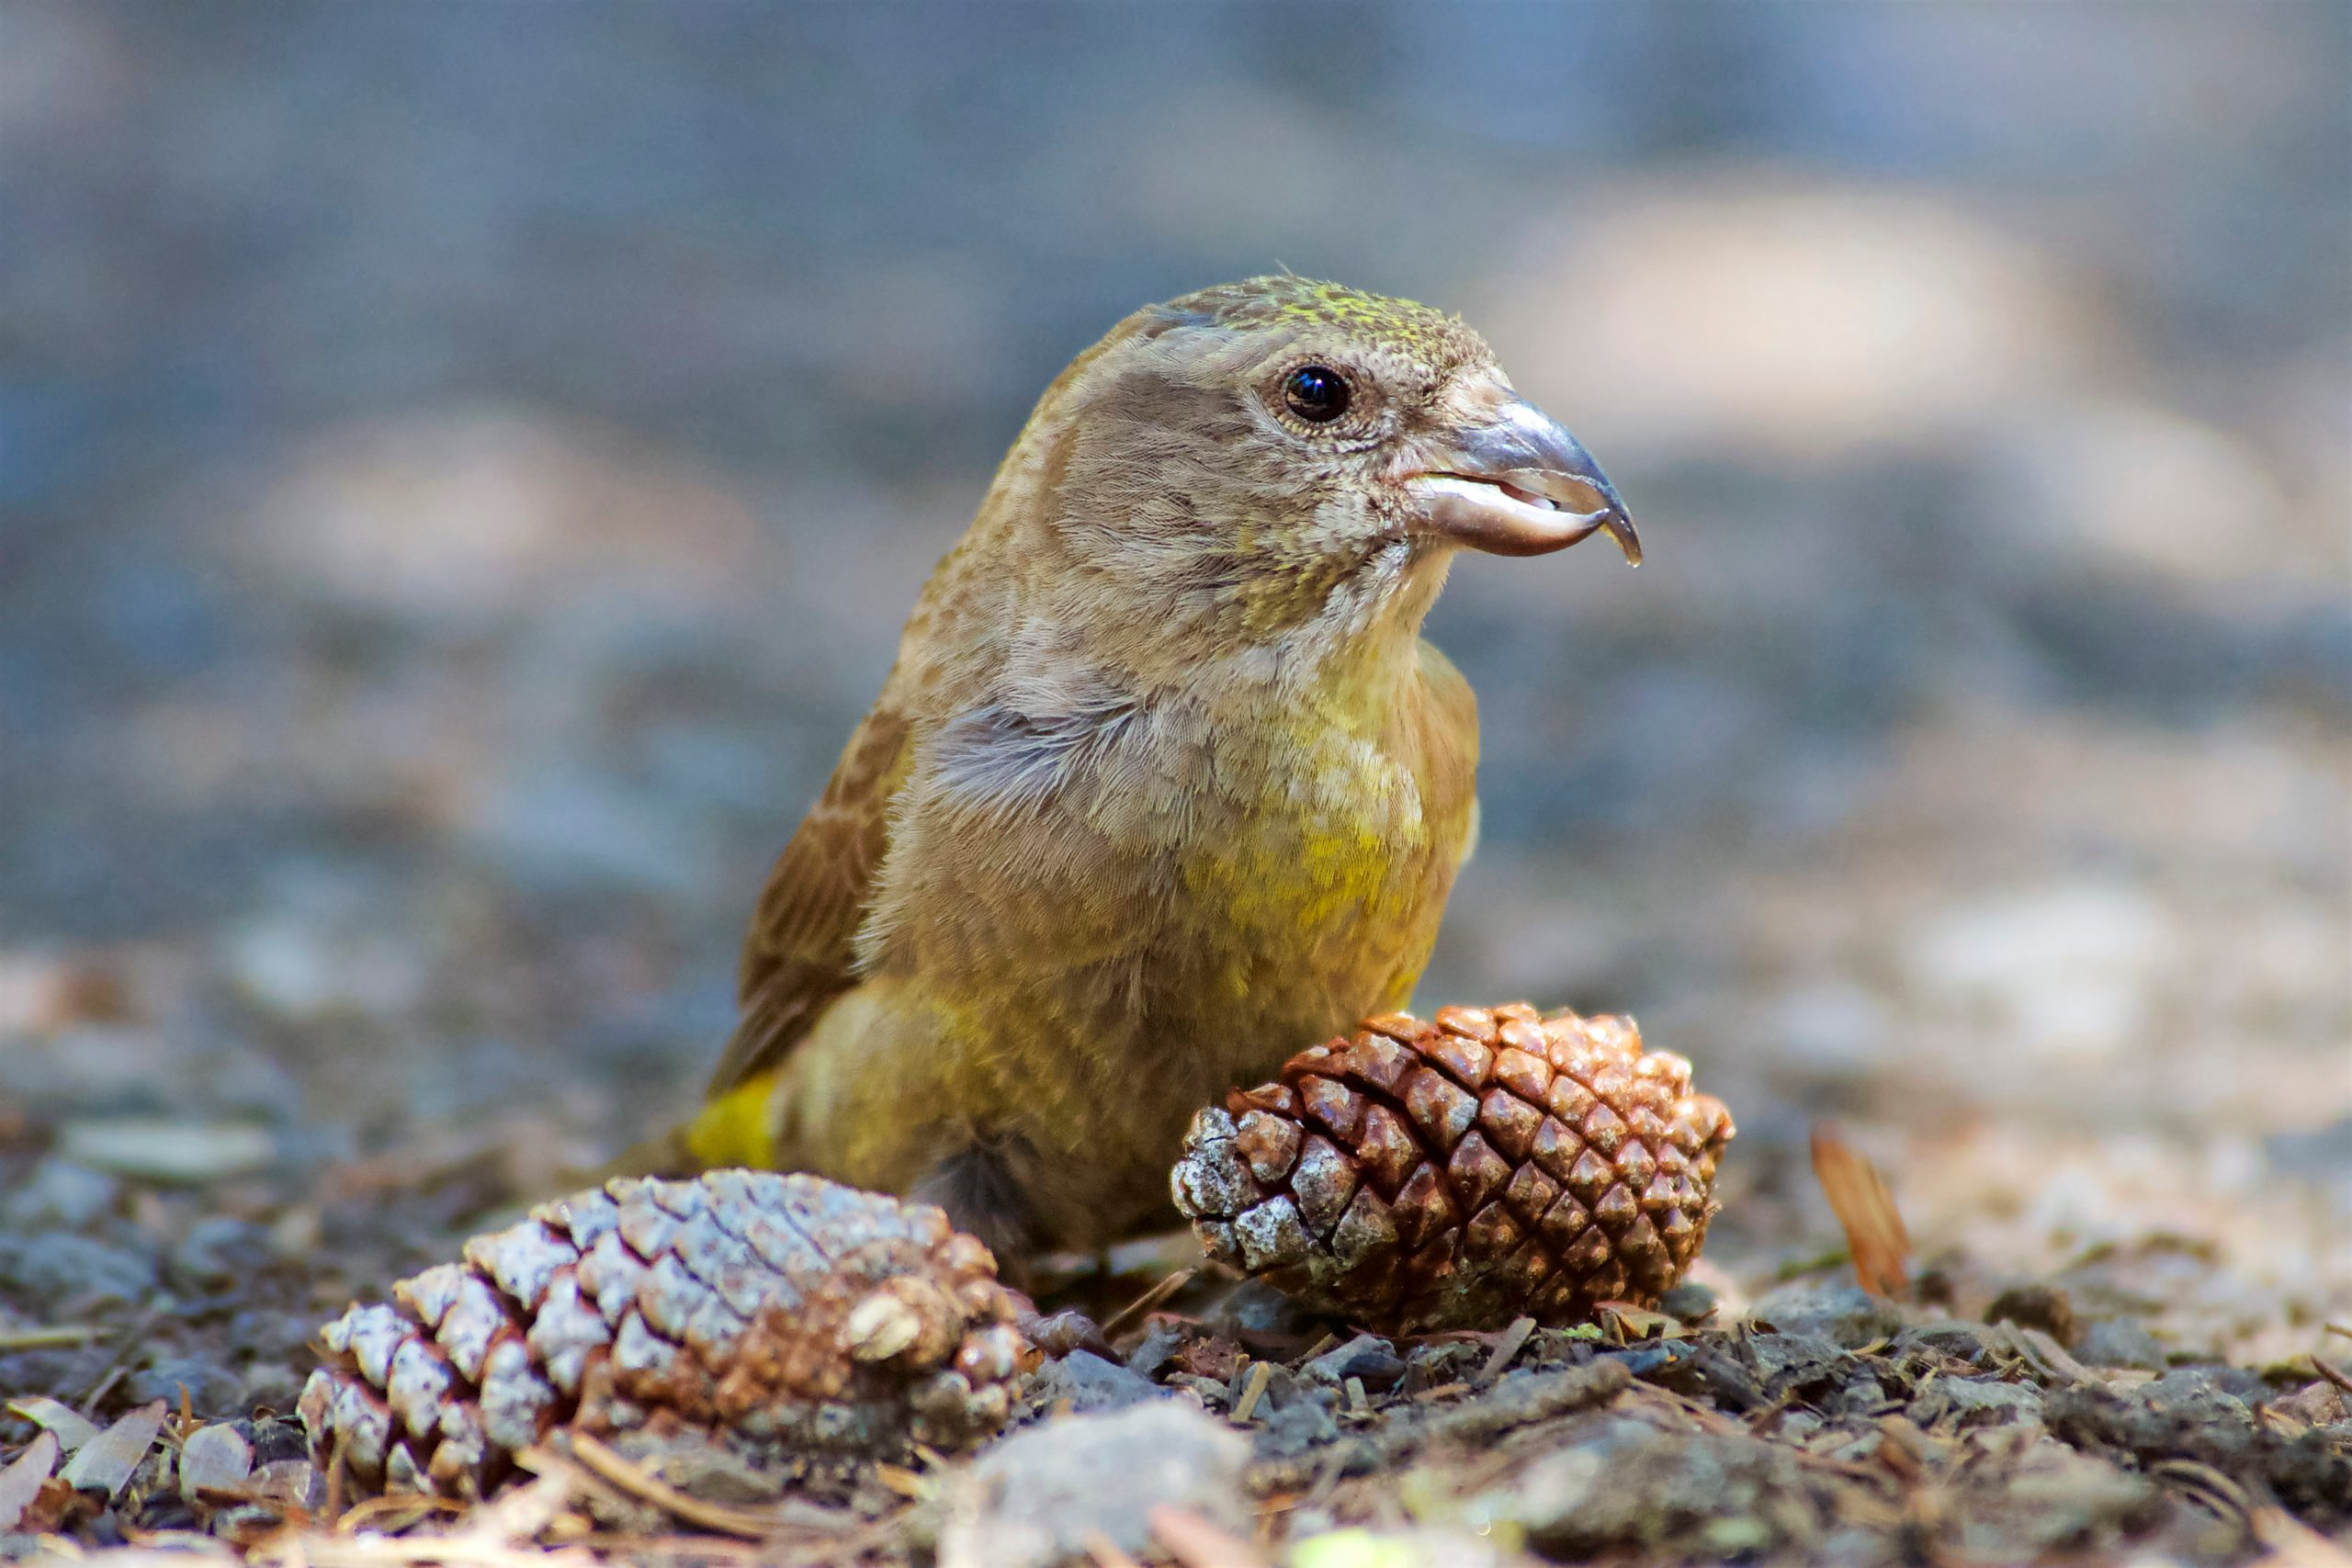 A female Cassia crossbill examining pinecones on the ground.